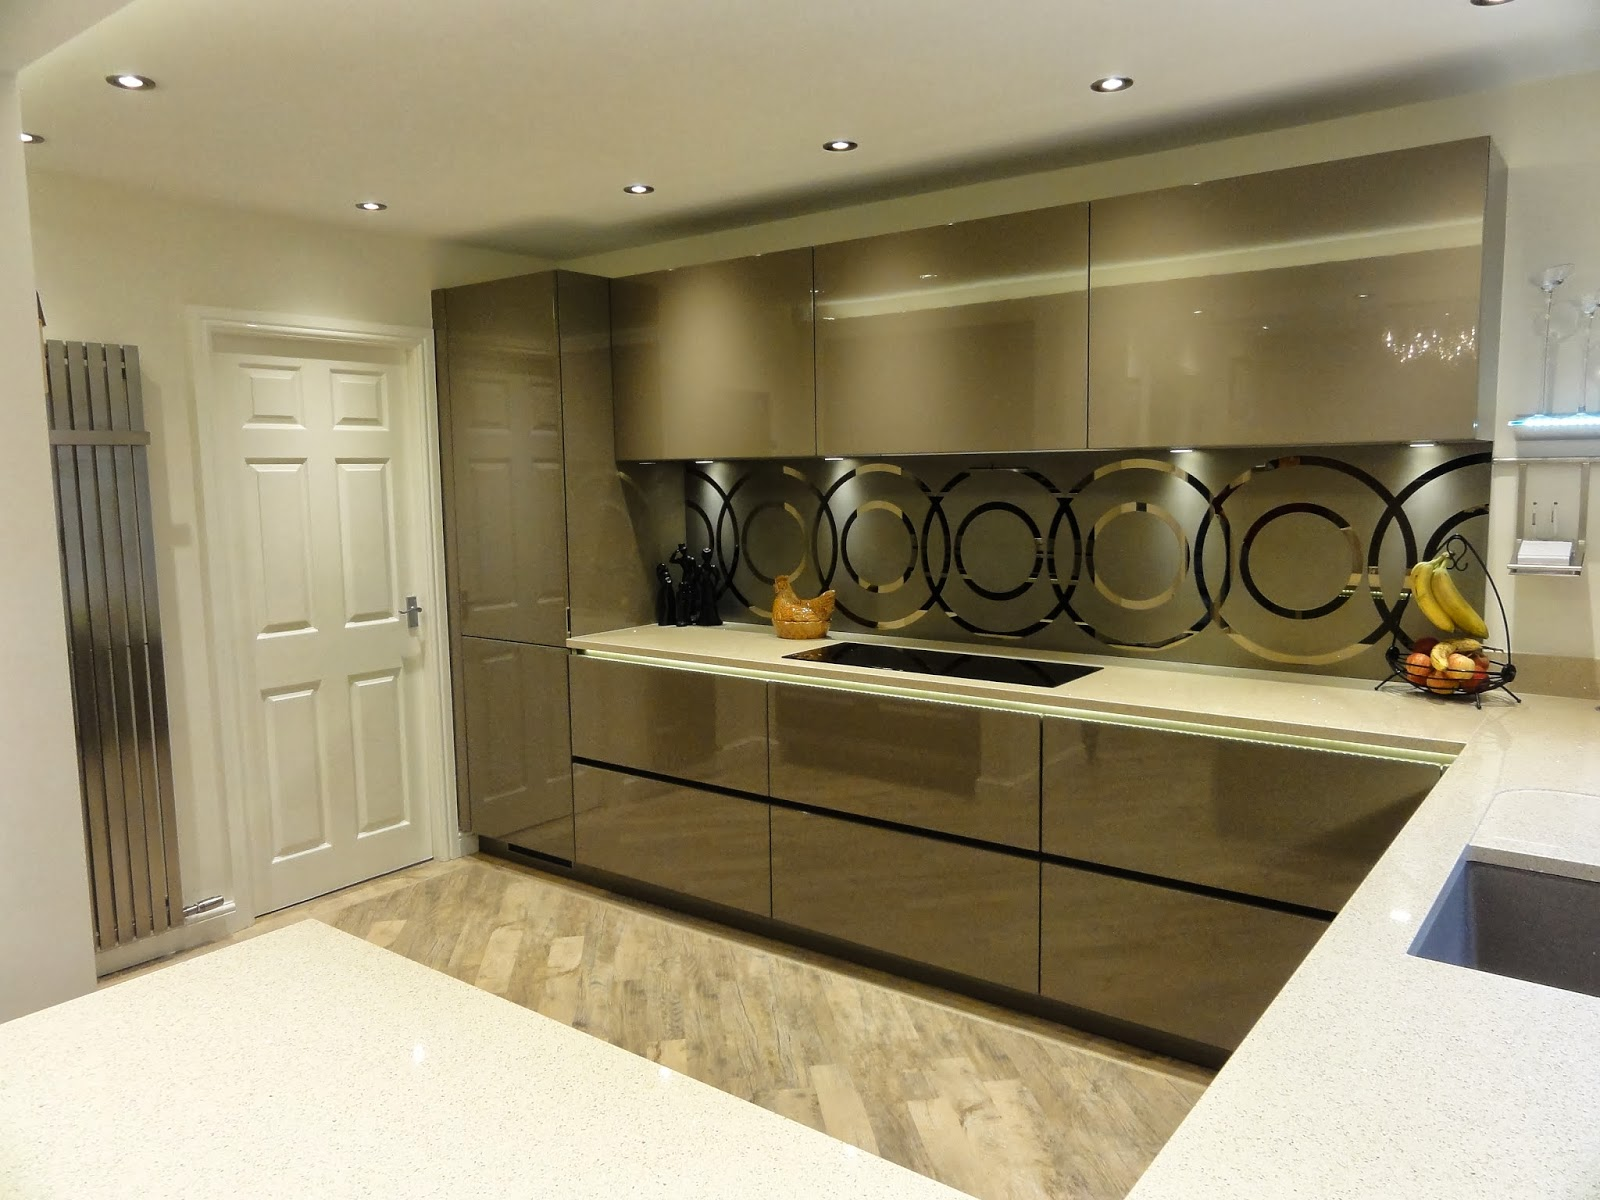 beige kitchen cabinets design for small space diane berry kitchens client mr and mrs hampson